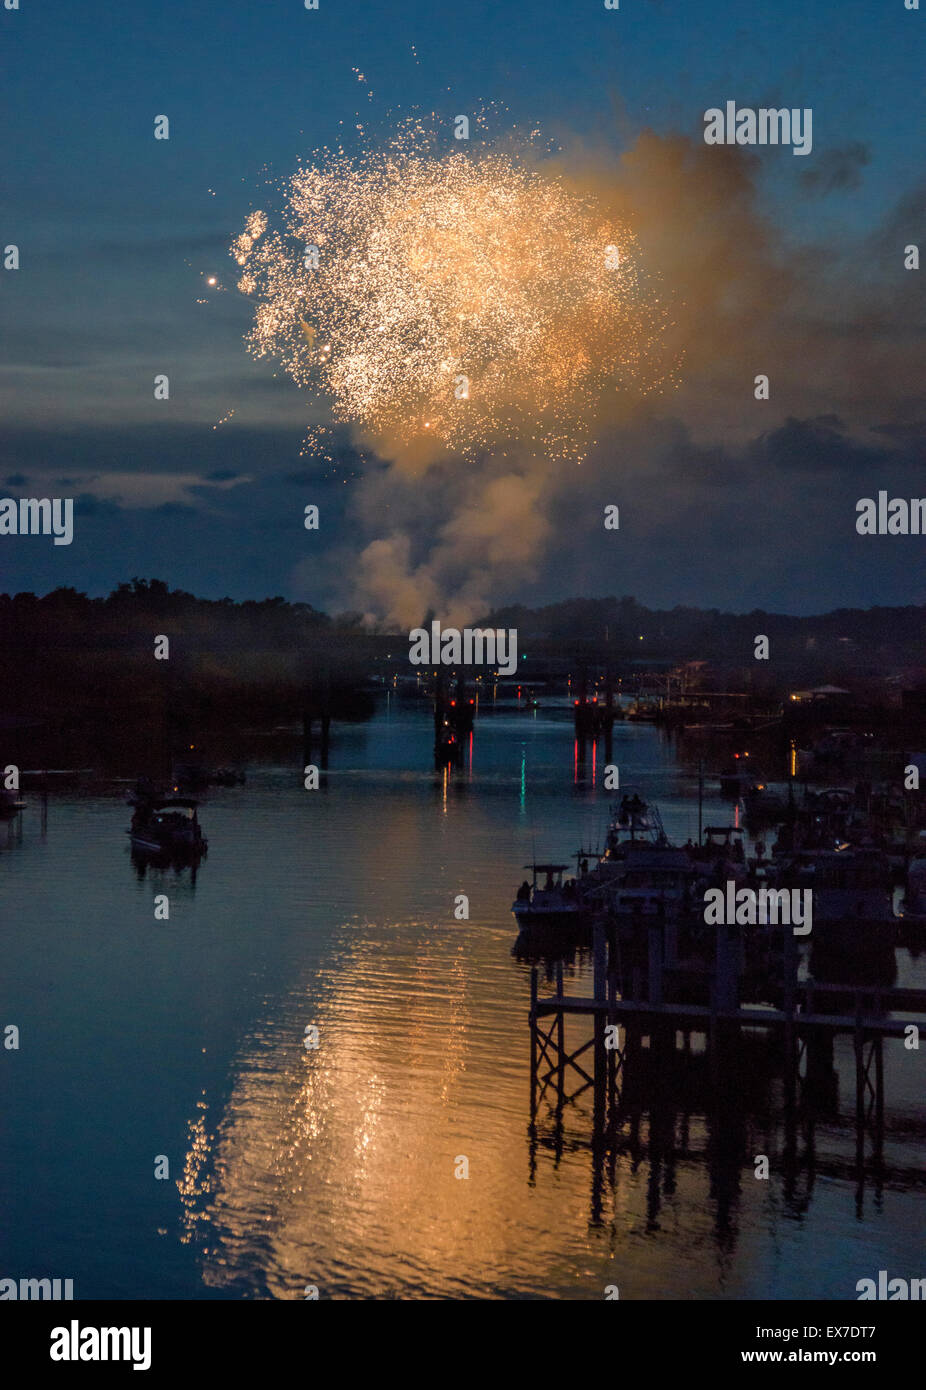 Fireworks over Steinhatchee River, Steinhatchee, Florida - Stock Image